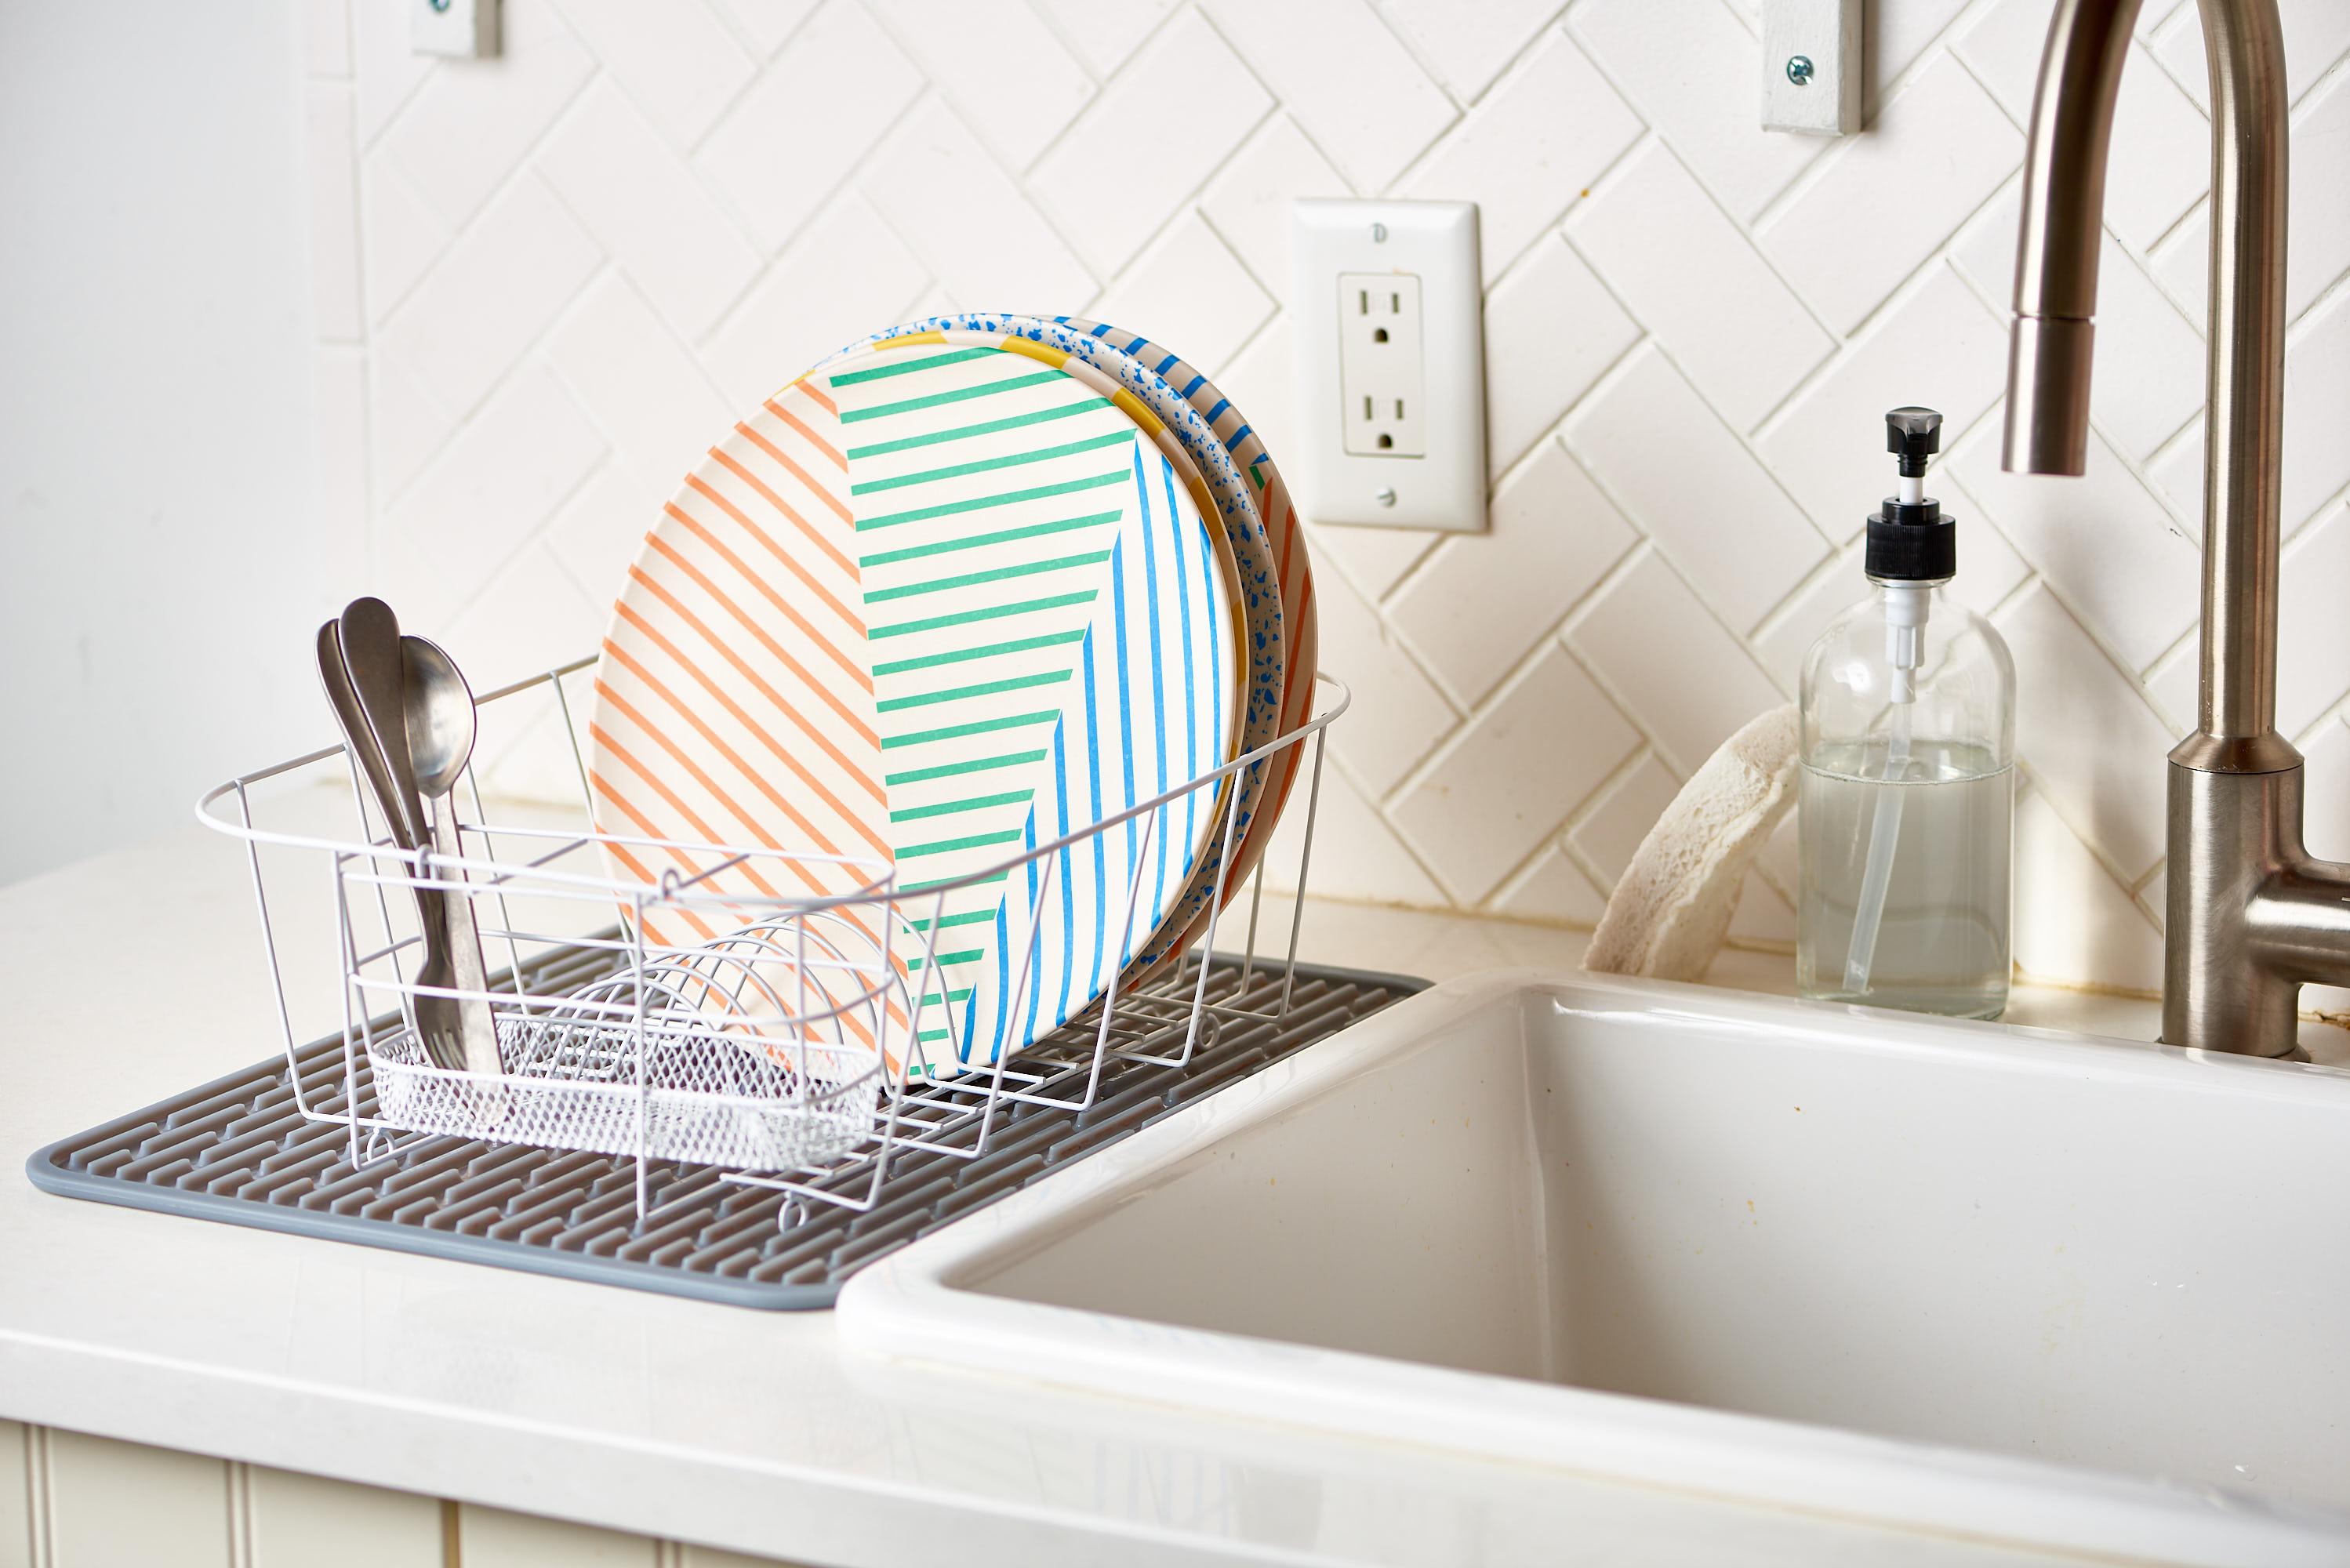 surprising uses for an old dish rack